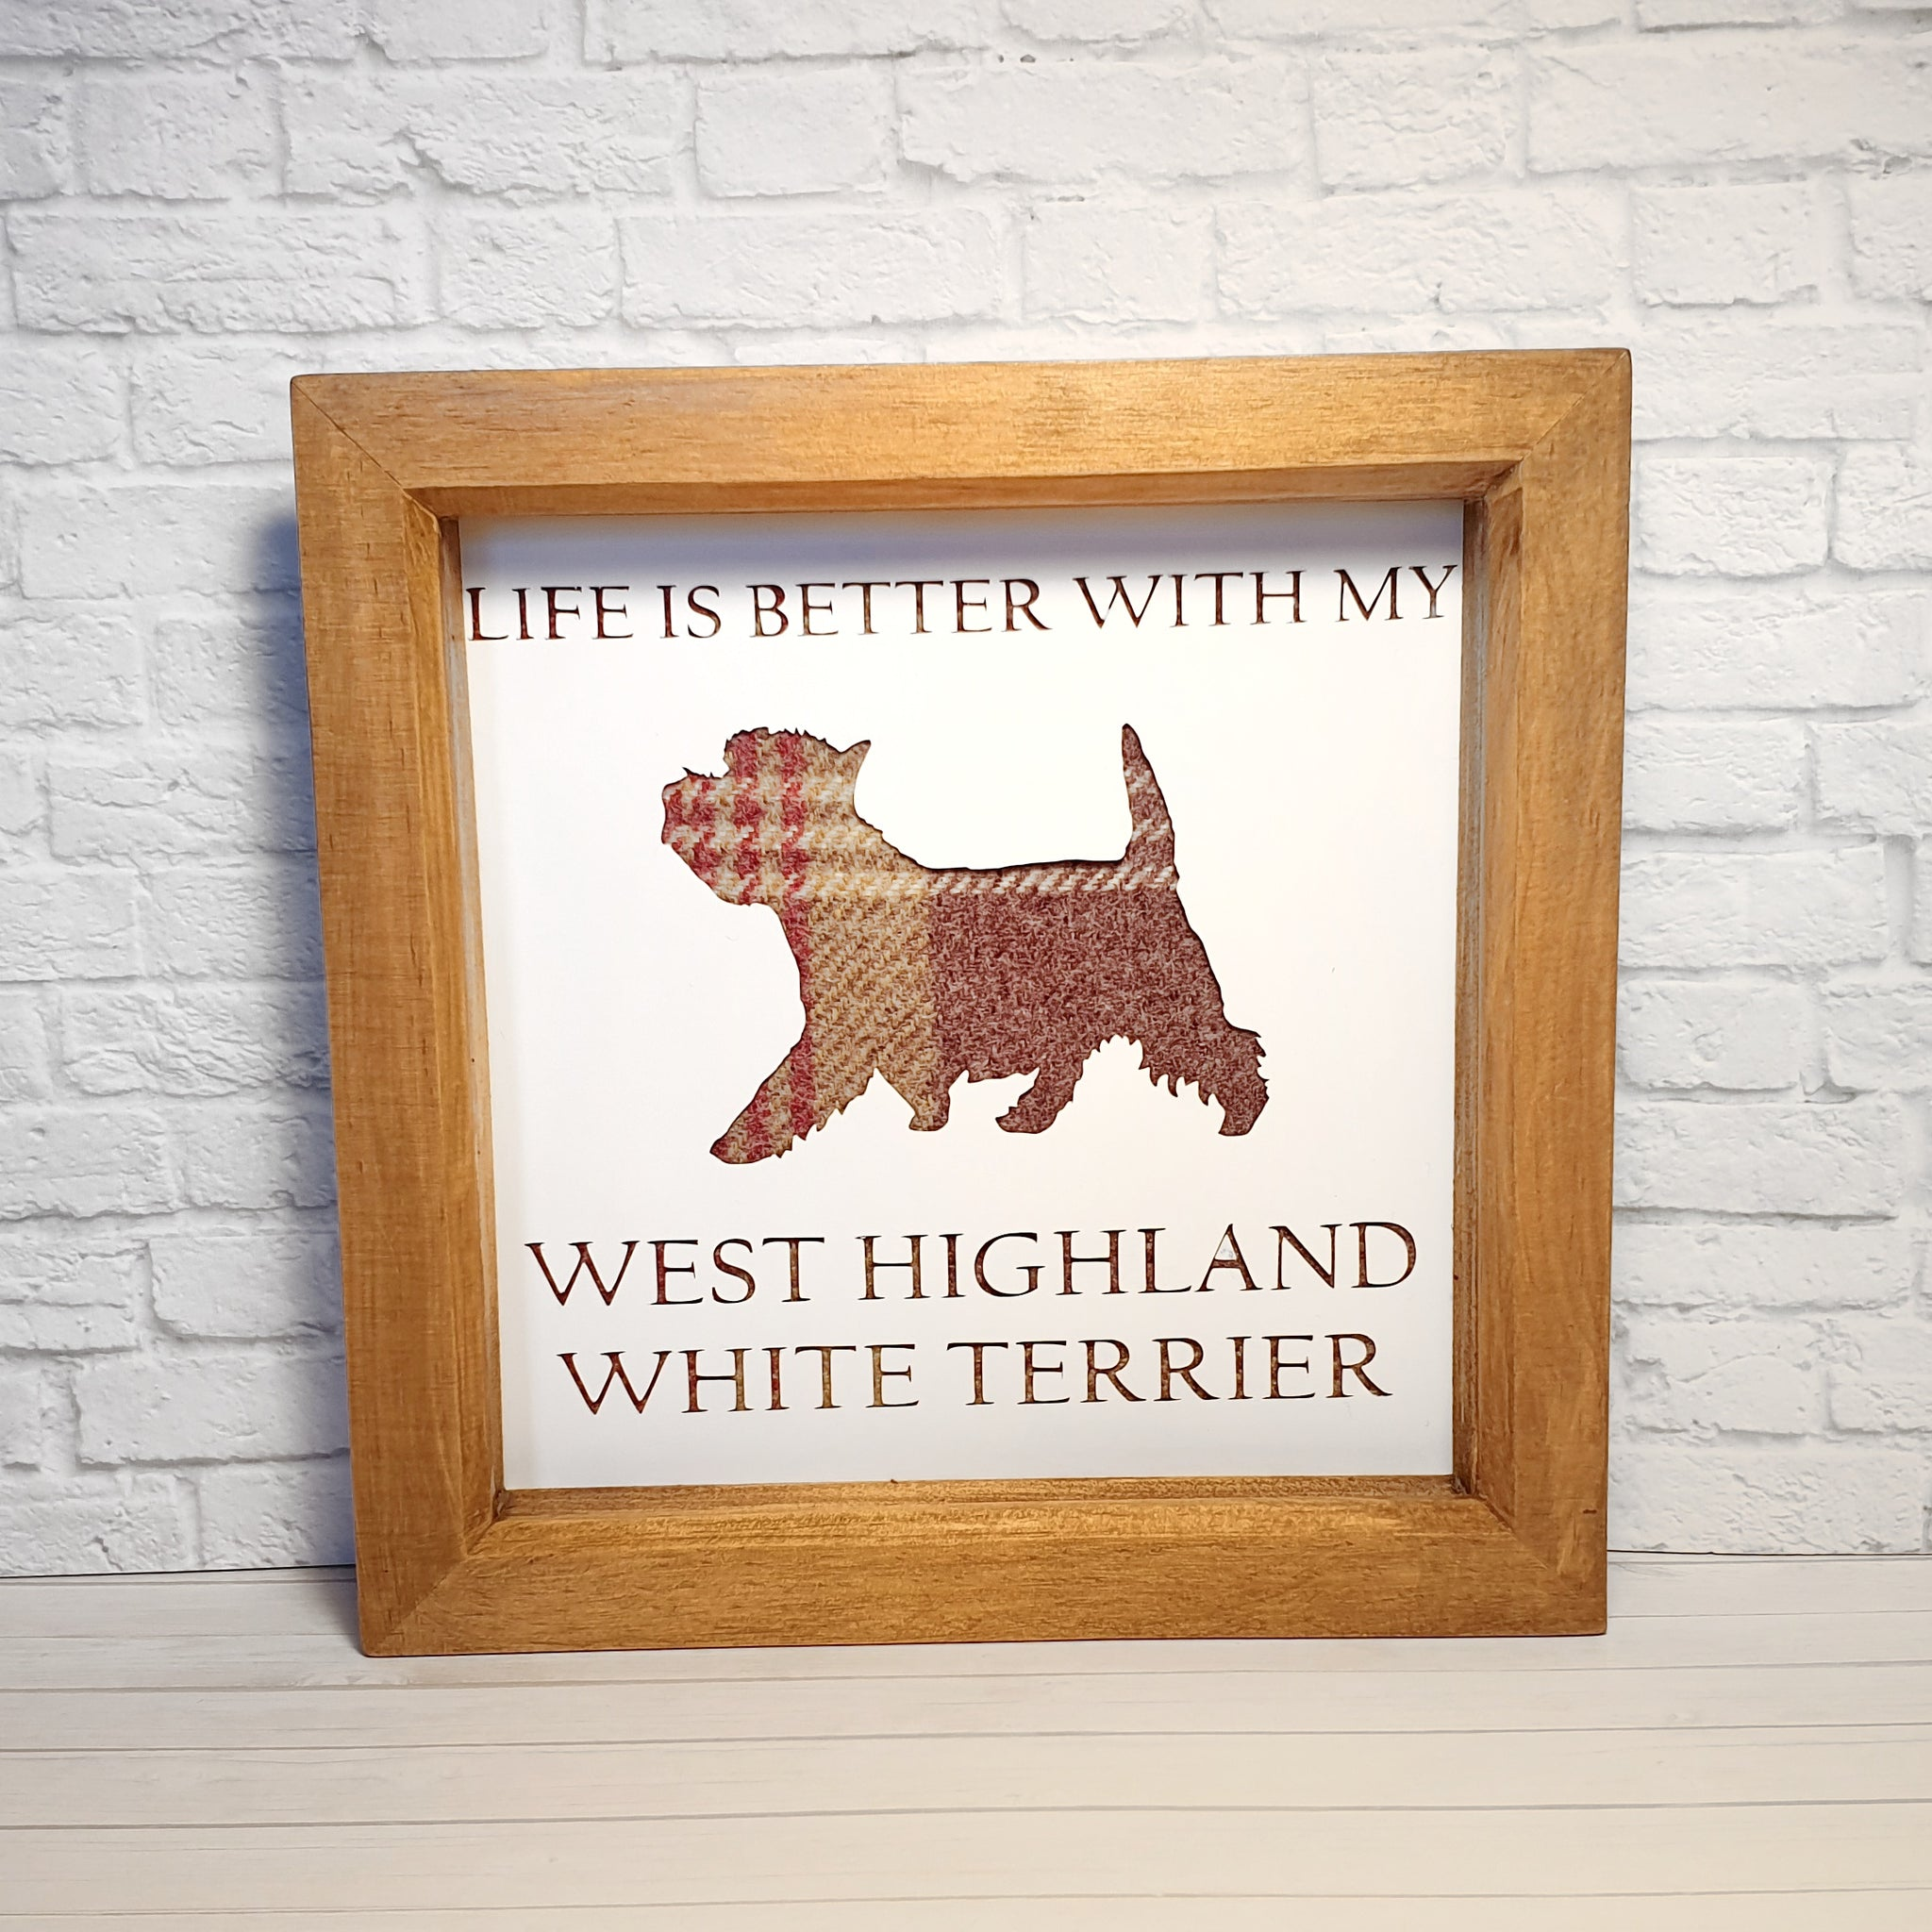 Life is better with my West Highland White Terrier - Box Frame